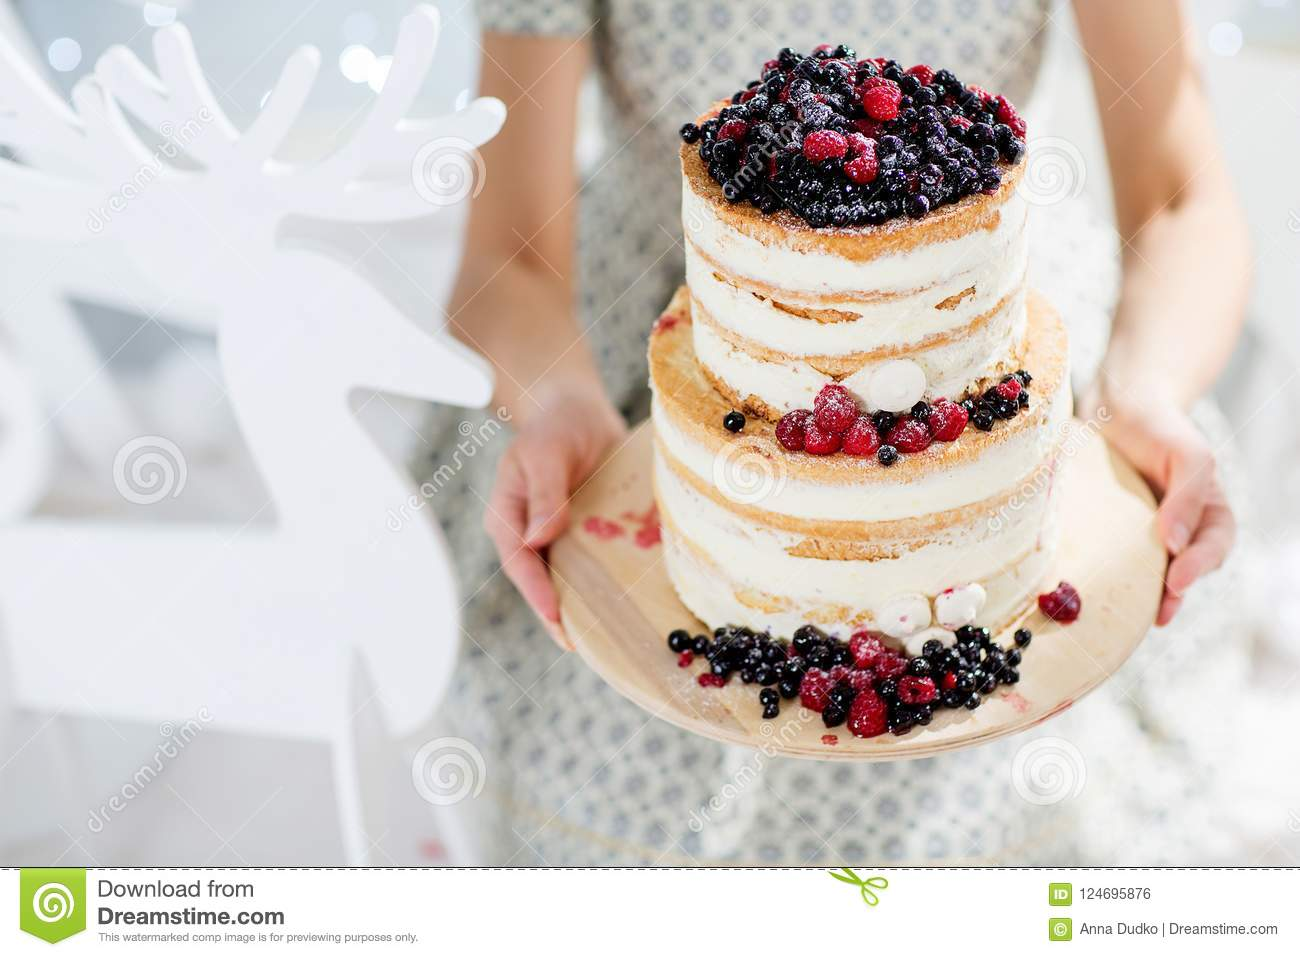 Woman Holding A Birthday Cake Stock Photo Image Of Woman Design 124695876